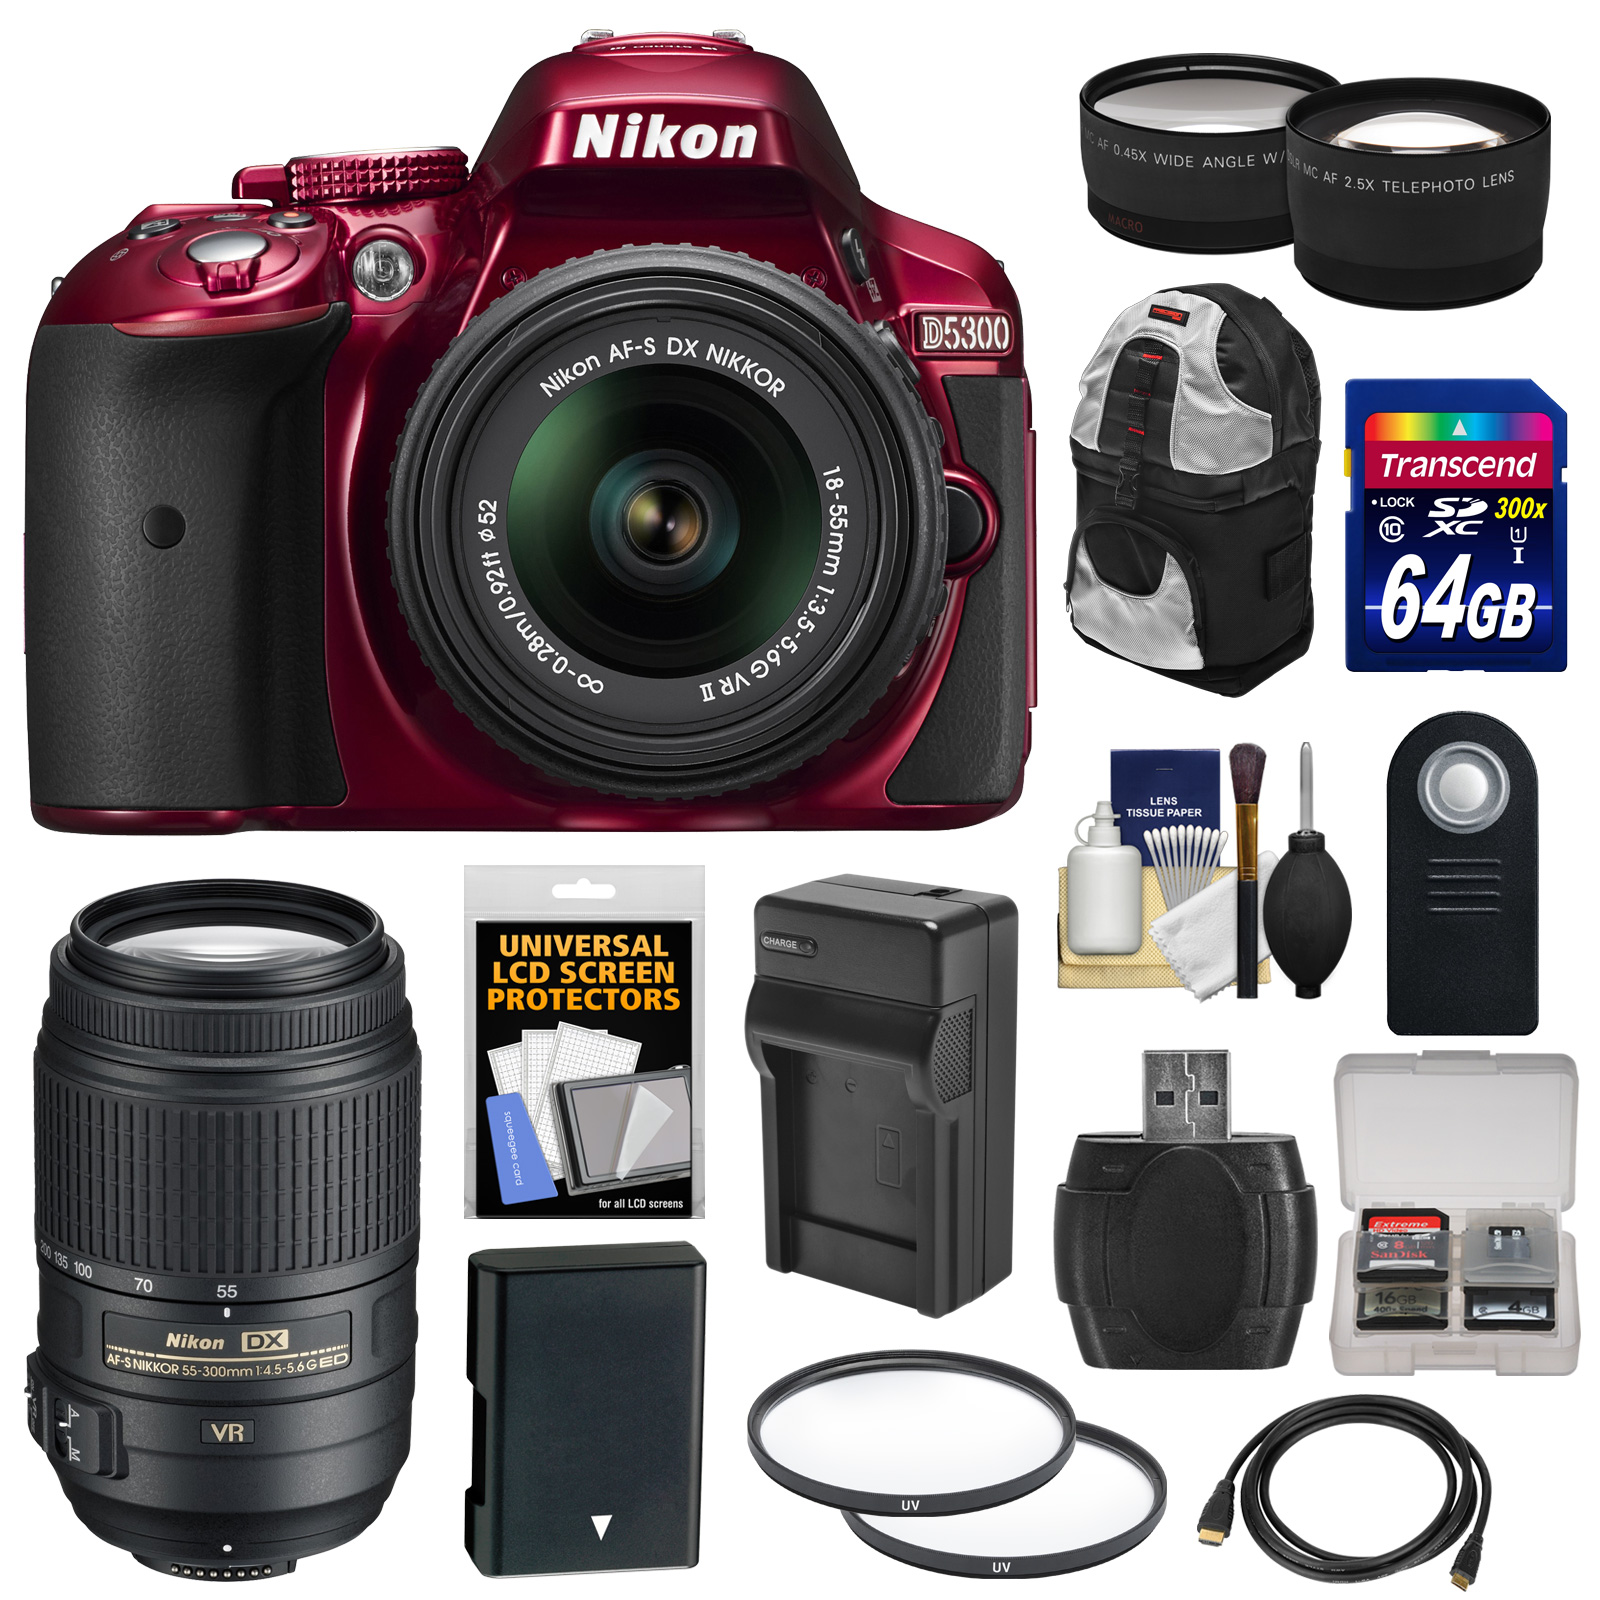 Nikon D5300 Digital SLR Camera & 18-55mm VR II Lens (Red) with 55-300mm VR Lens + 64GB Card + Battery & Charger + Backpack + Tele/Wide Lens Kit